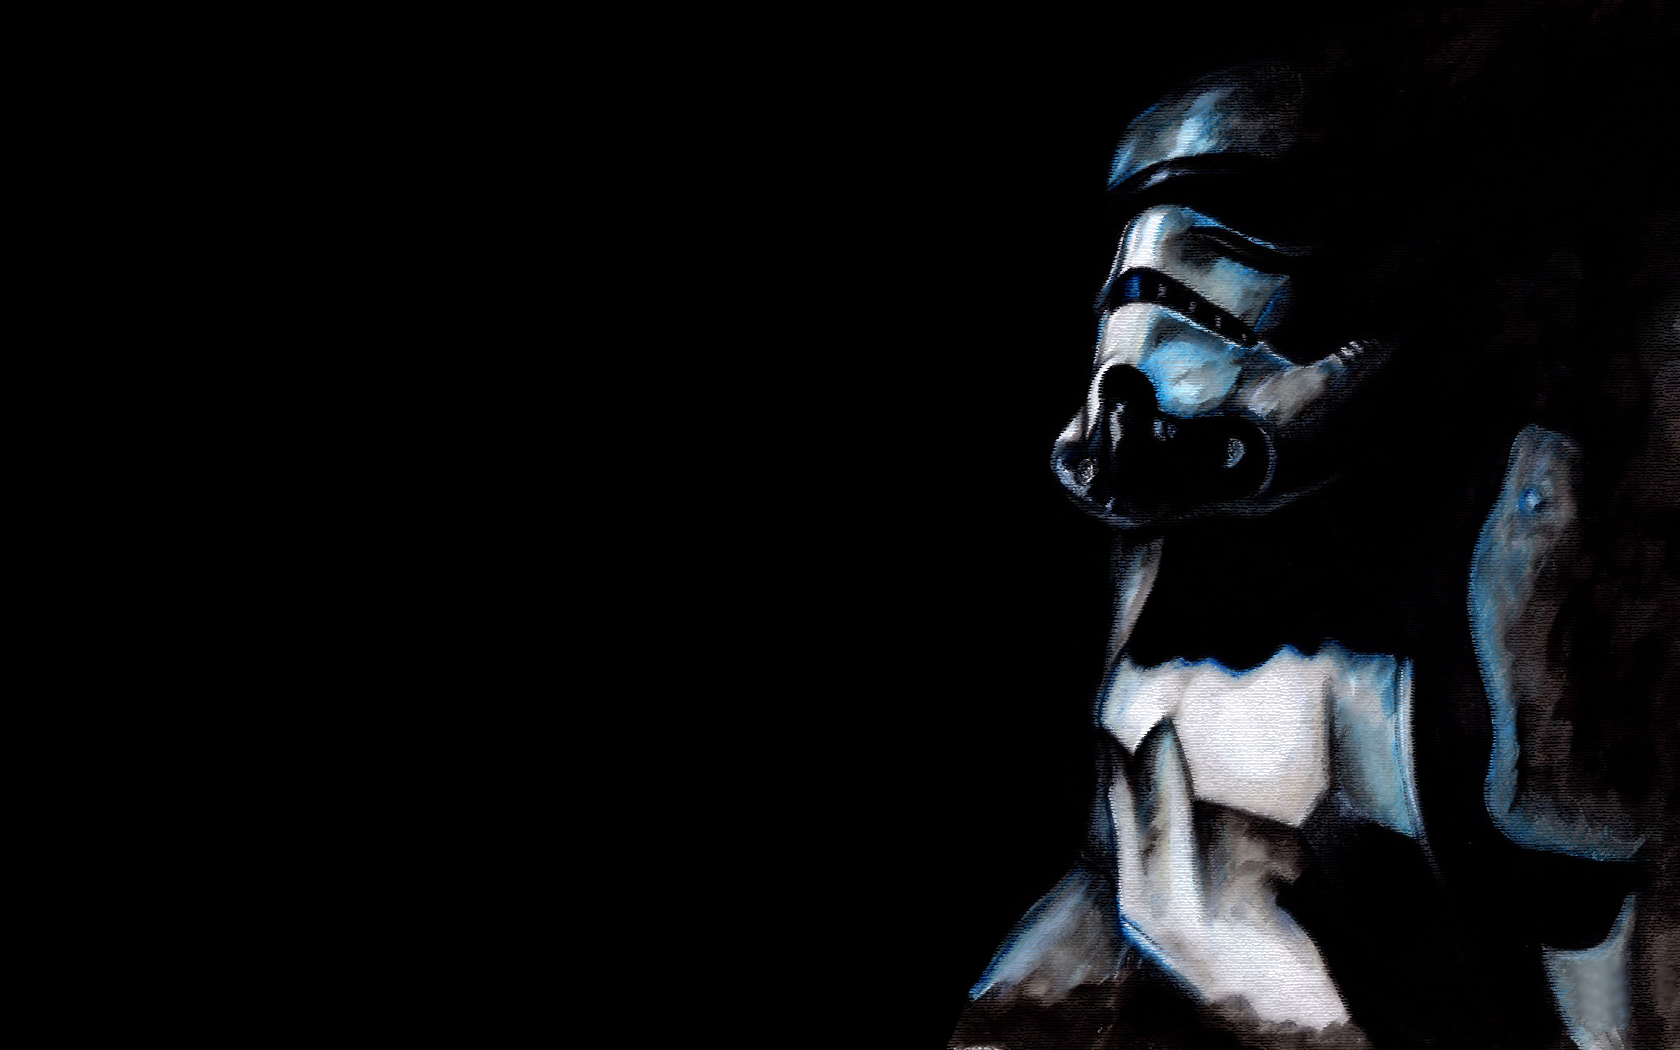 stormtrooper wallpaper star wars - photo #36